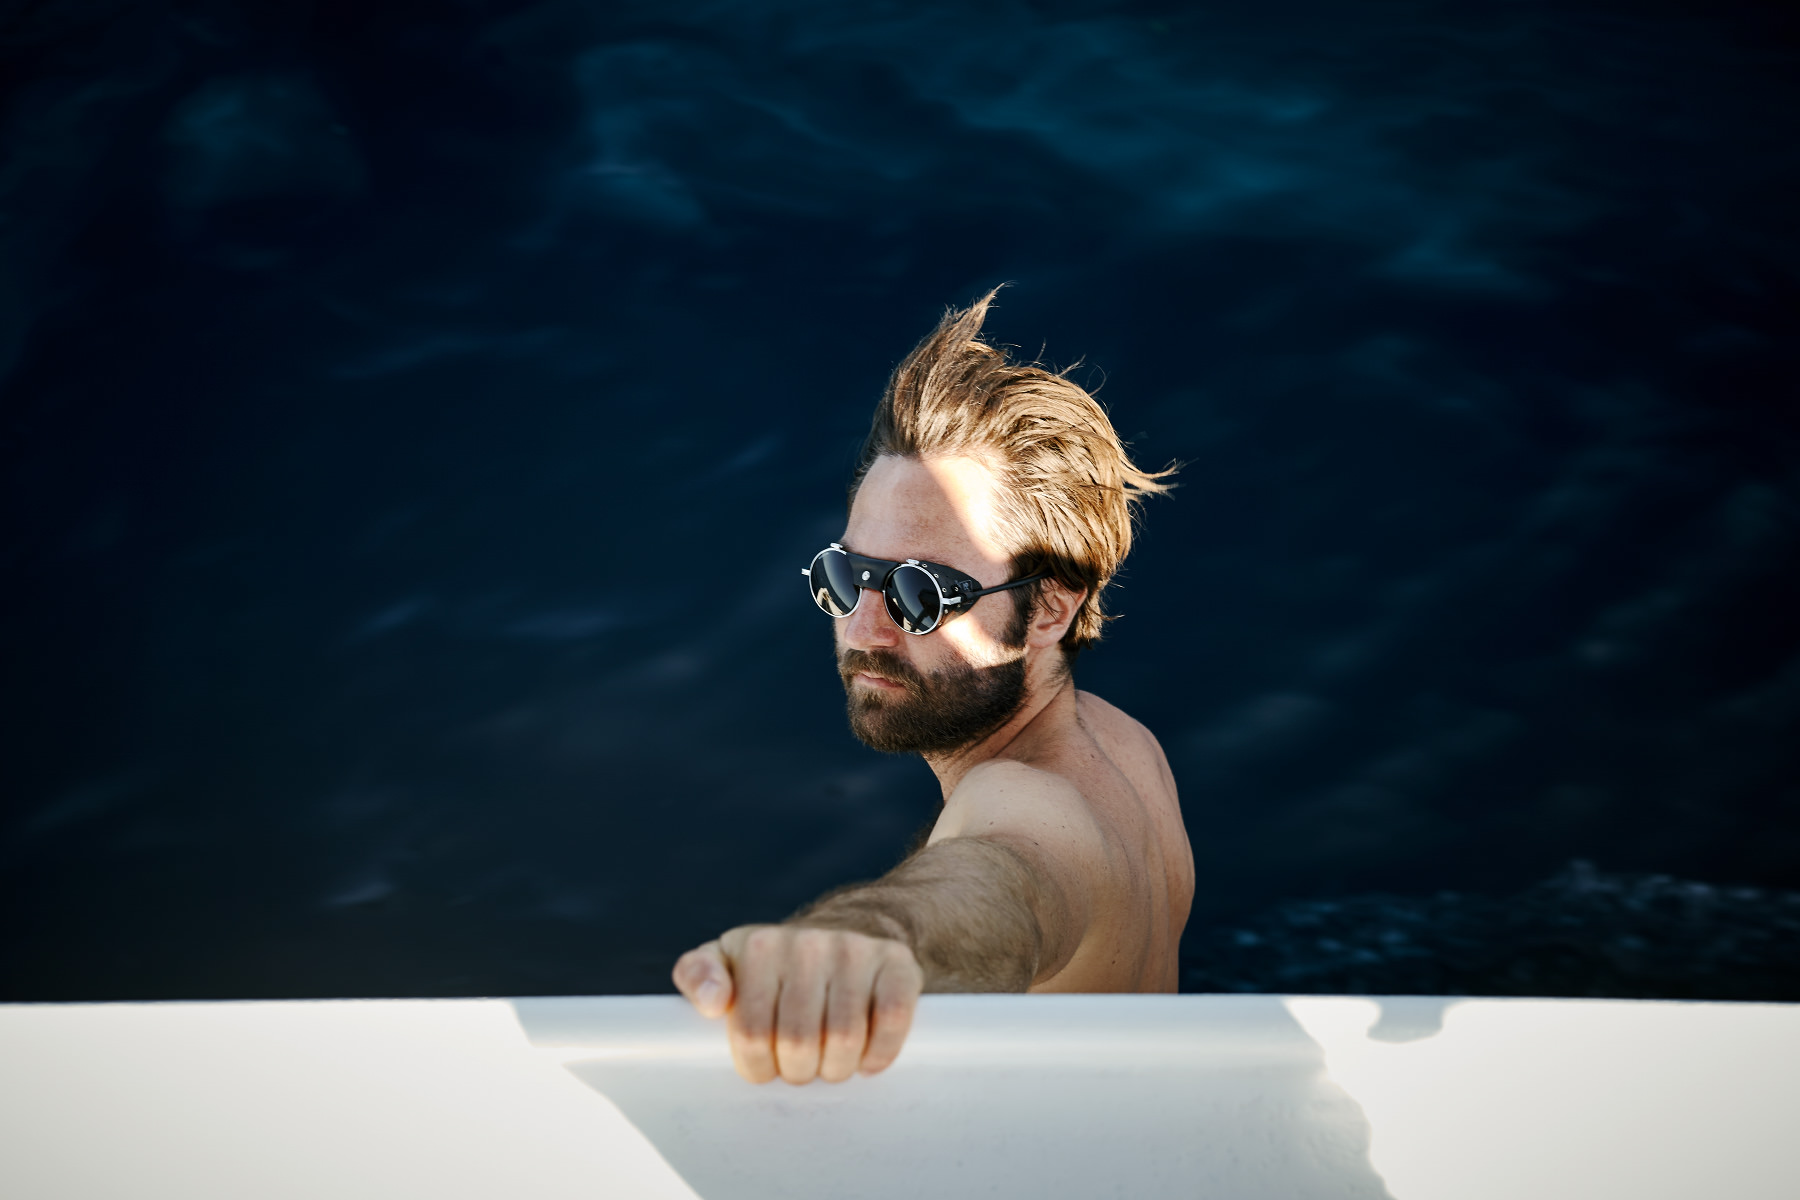 florian-lierzer-people-lifestyle-photography-IMG_0631.2